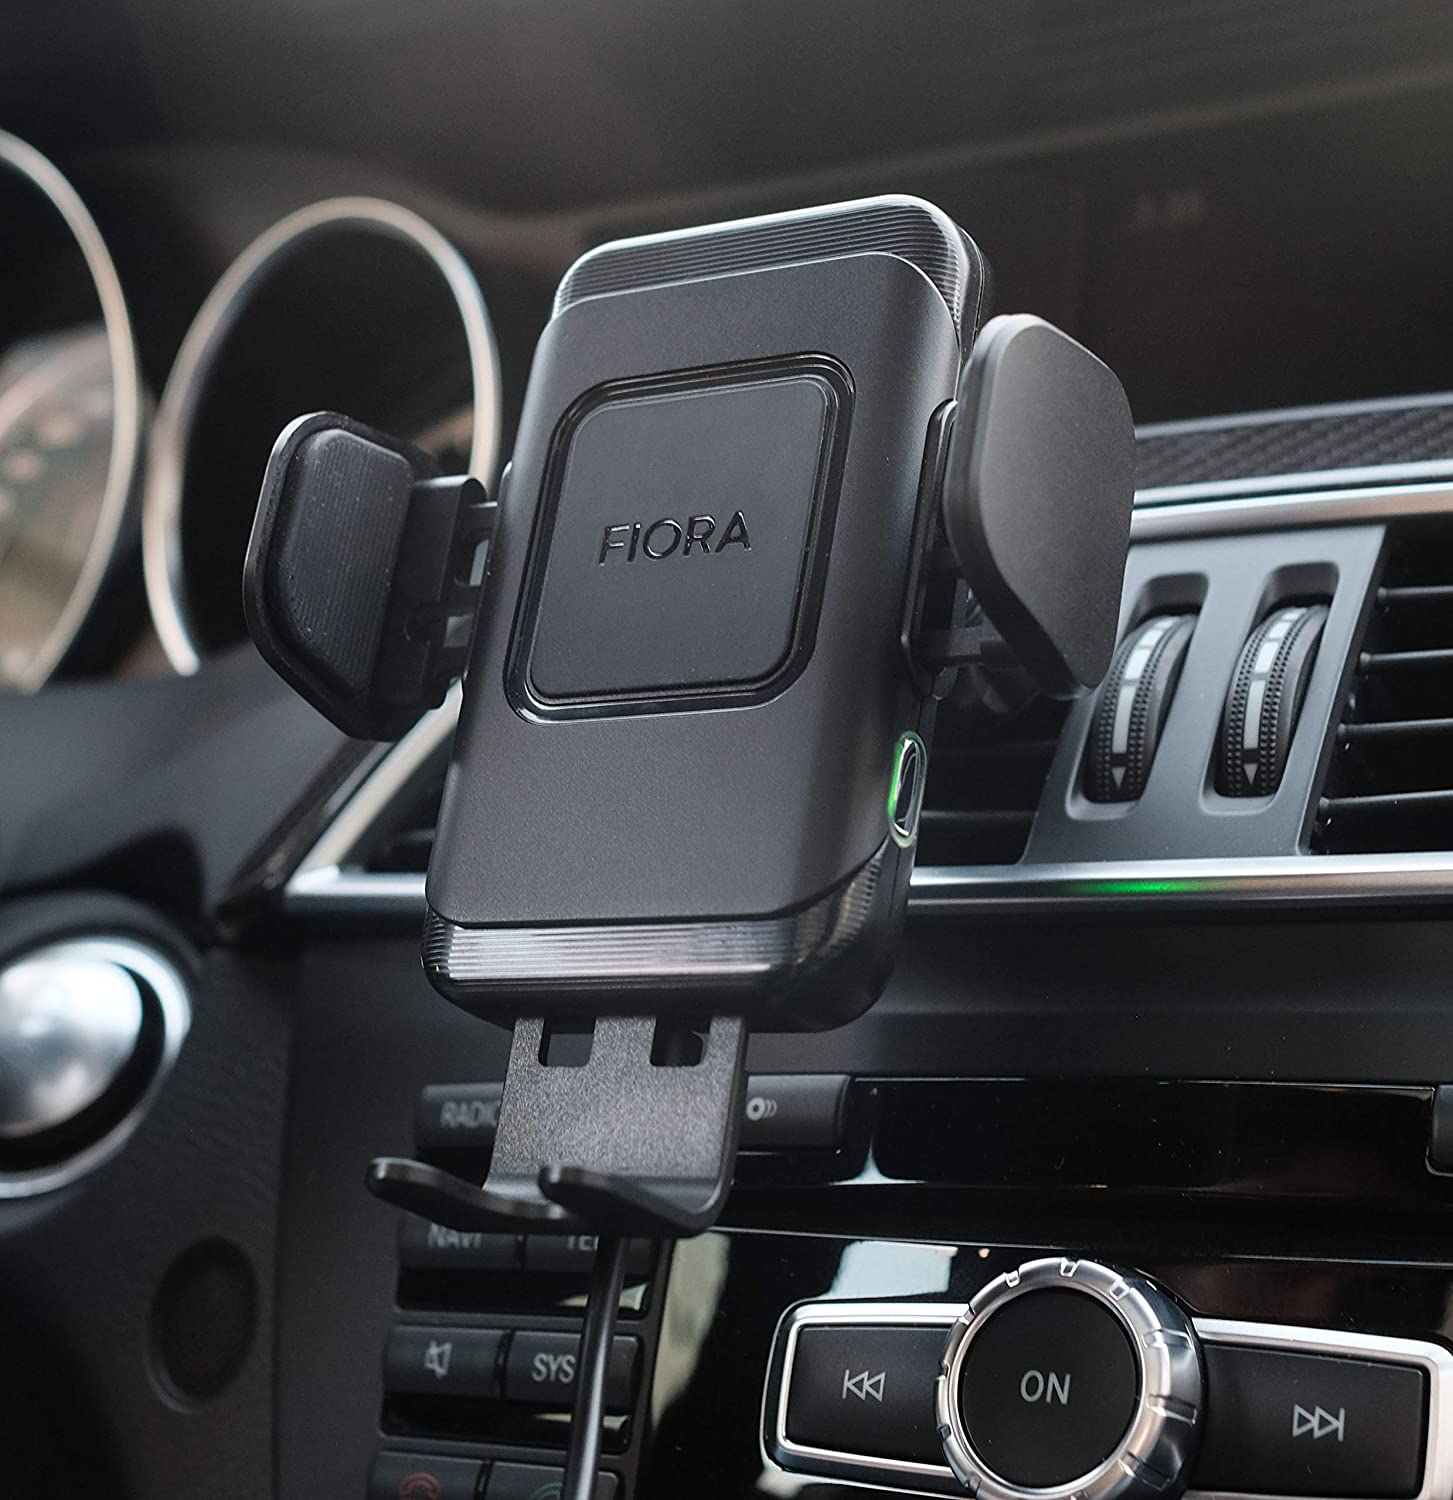 LG ULTIMATE Wireless Car Charger by Fiora 15W Qi Wireless Fast Charge QC 3.0 Adapter Automatic Clamping Phone Mount Holder Compatible iPhone XS Max//XS//XR//X//8//8 Plus Samsung Galaxy Note 9//S10//S9//S8 Titanium Grey